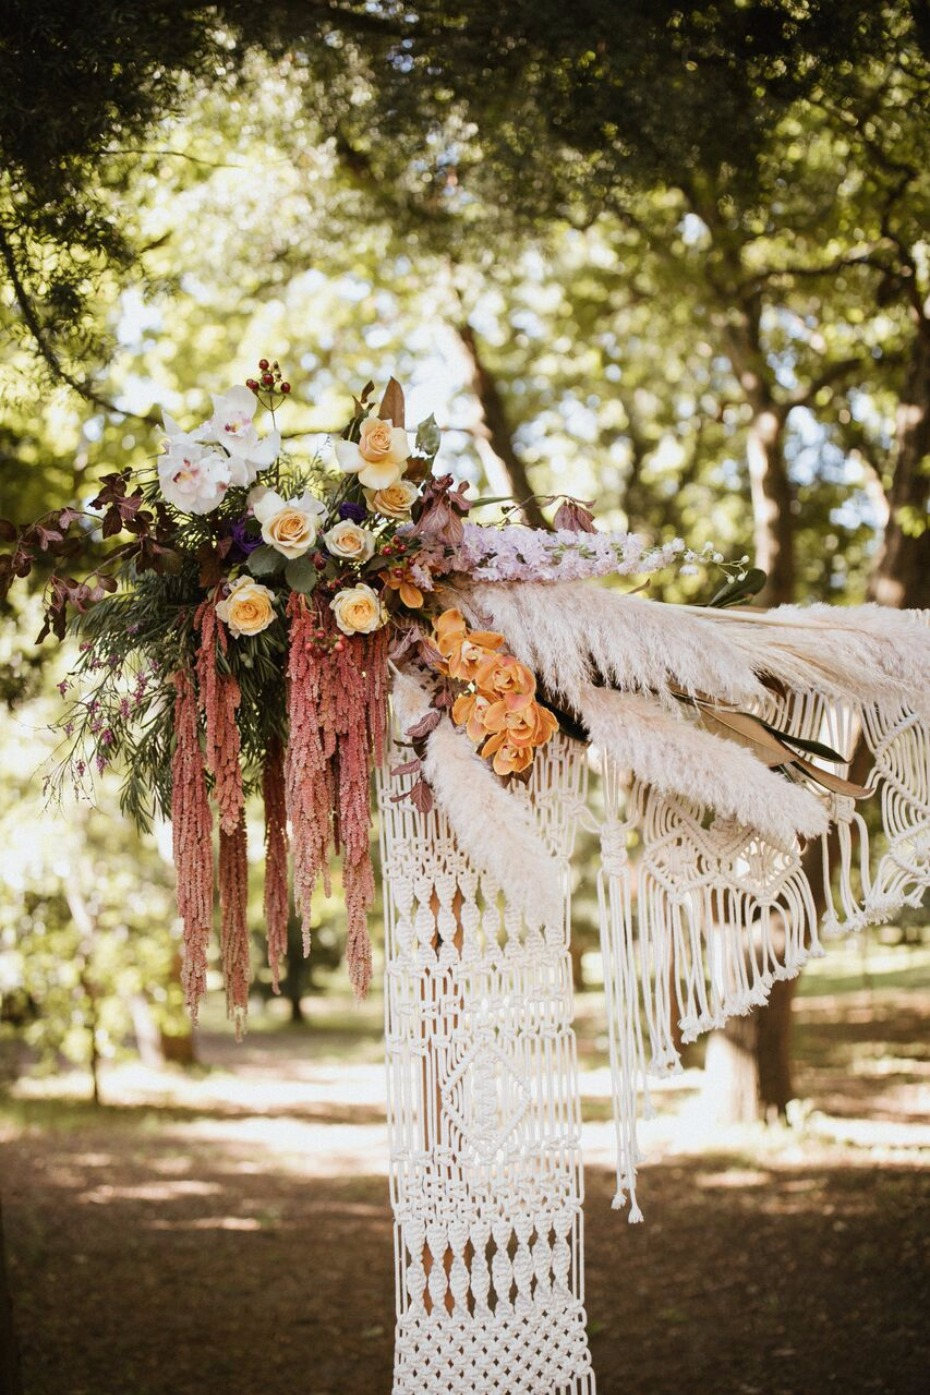 Macrame ceremony backdrop with florals